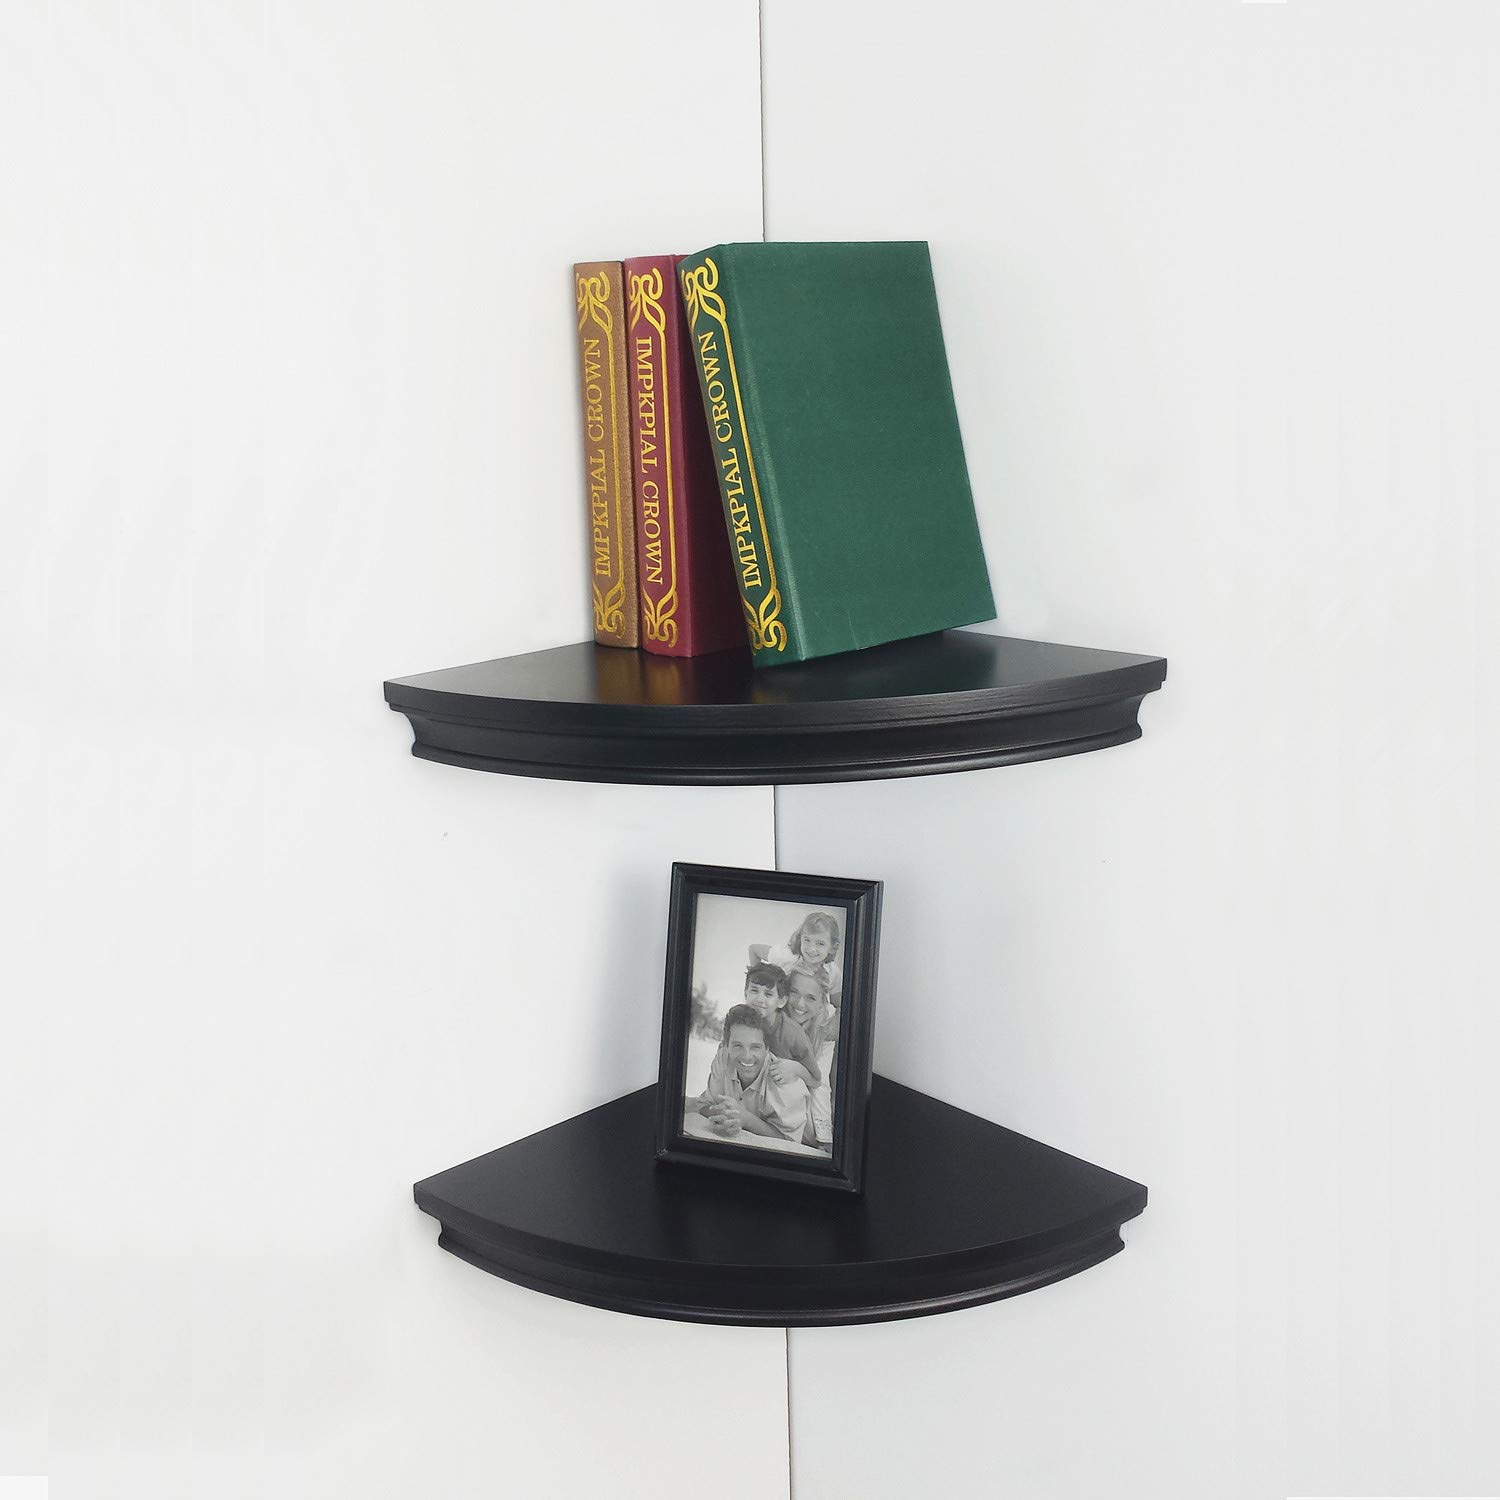 hao set classic radial corner wall shelf contoured radius floating shelving mdf shelves approx black home kitchen marble oak effect lamp table laying vinyl space saving computer